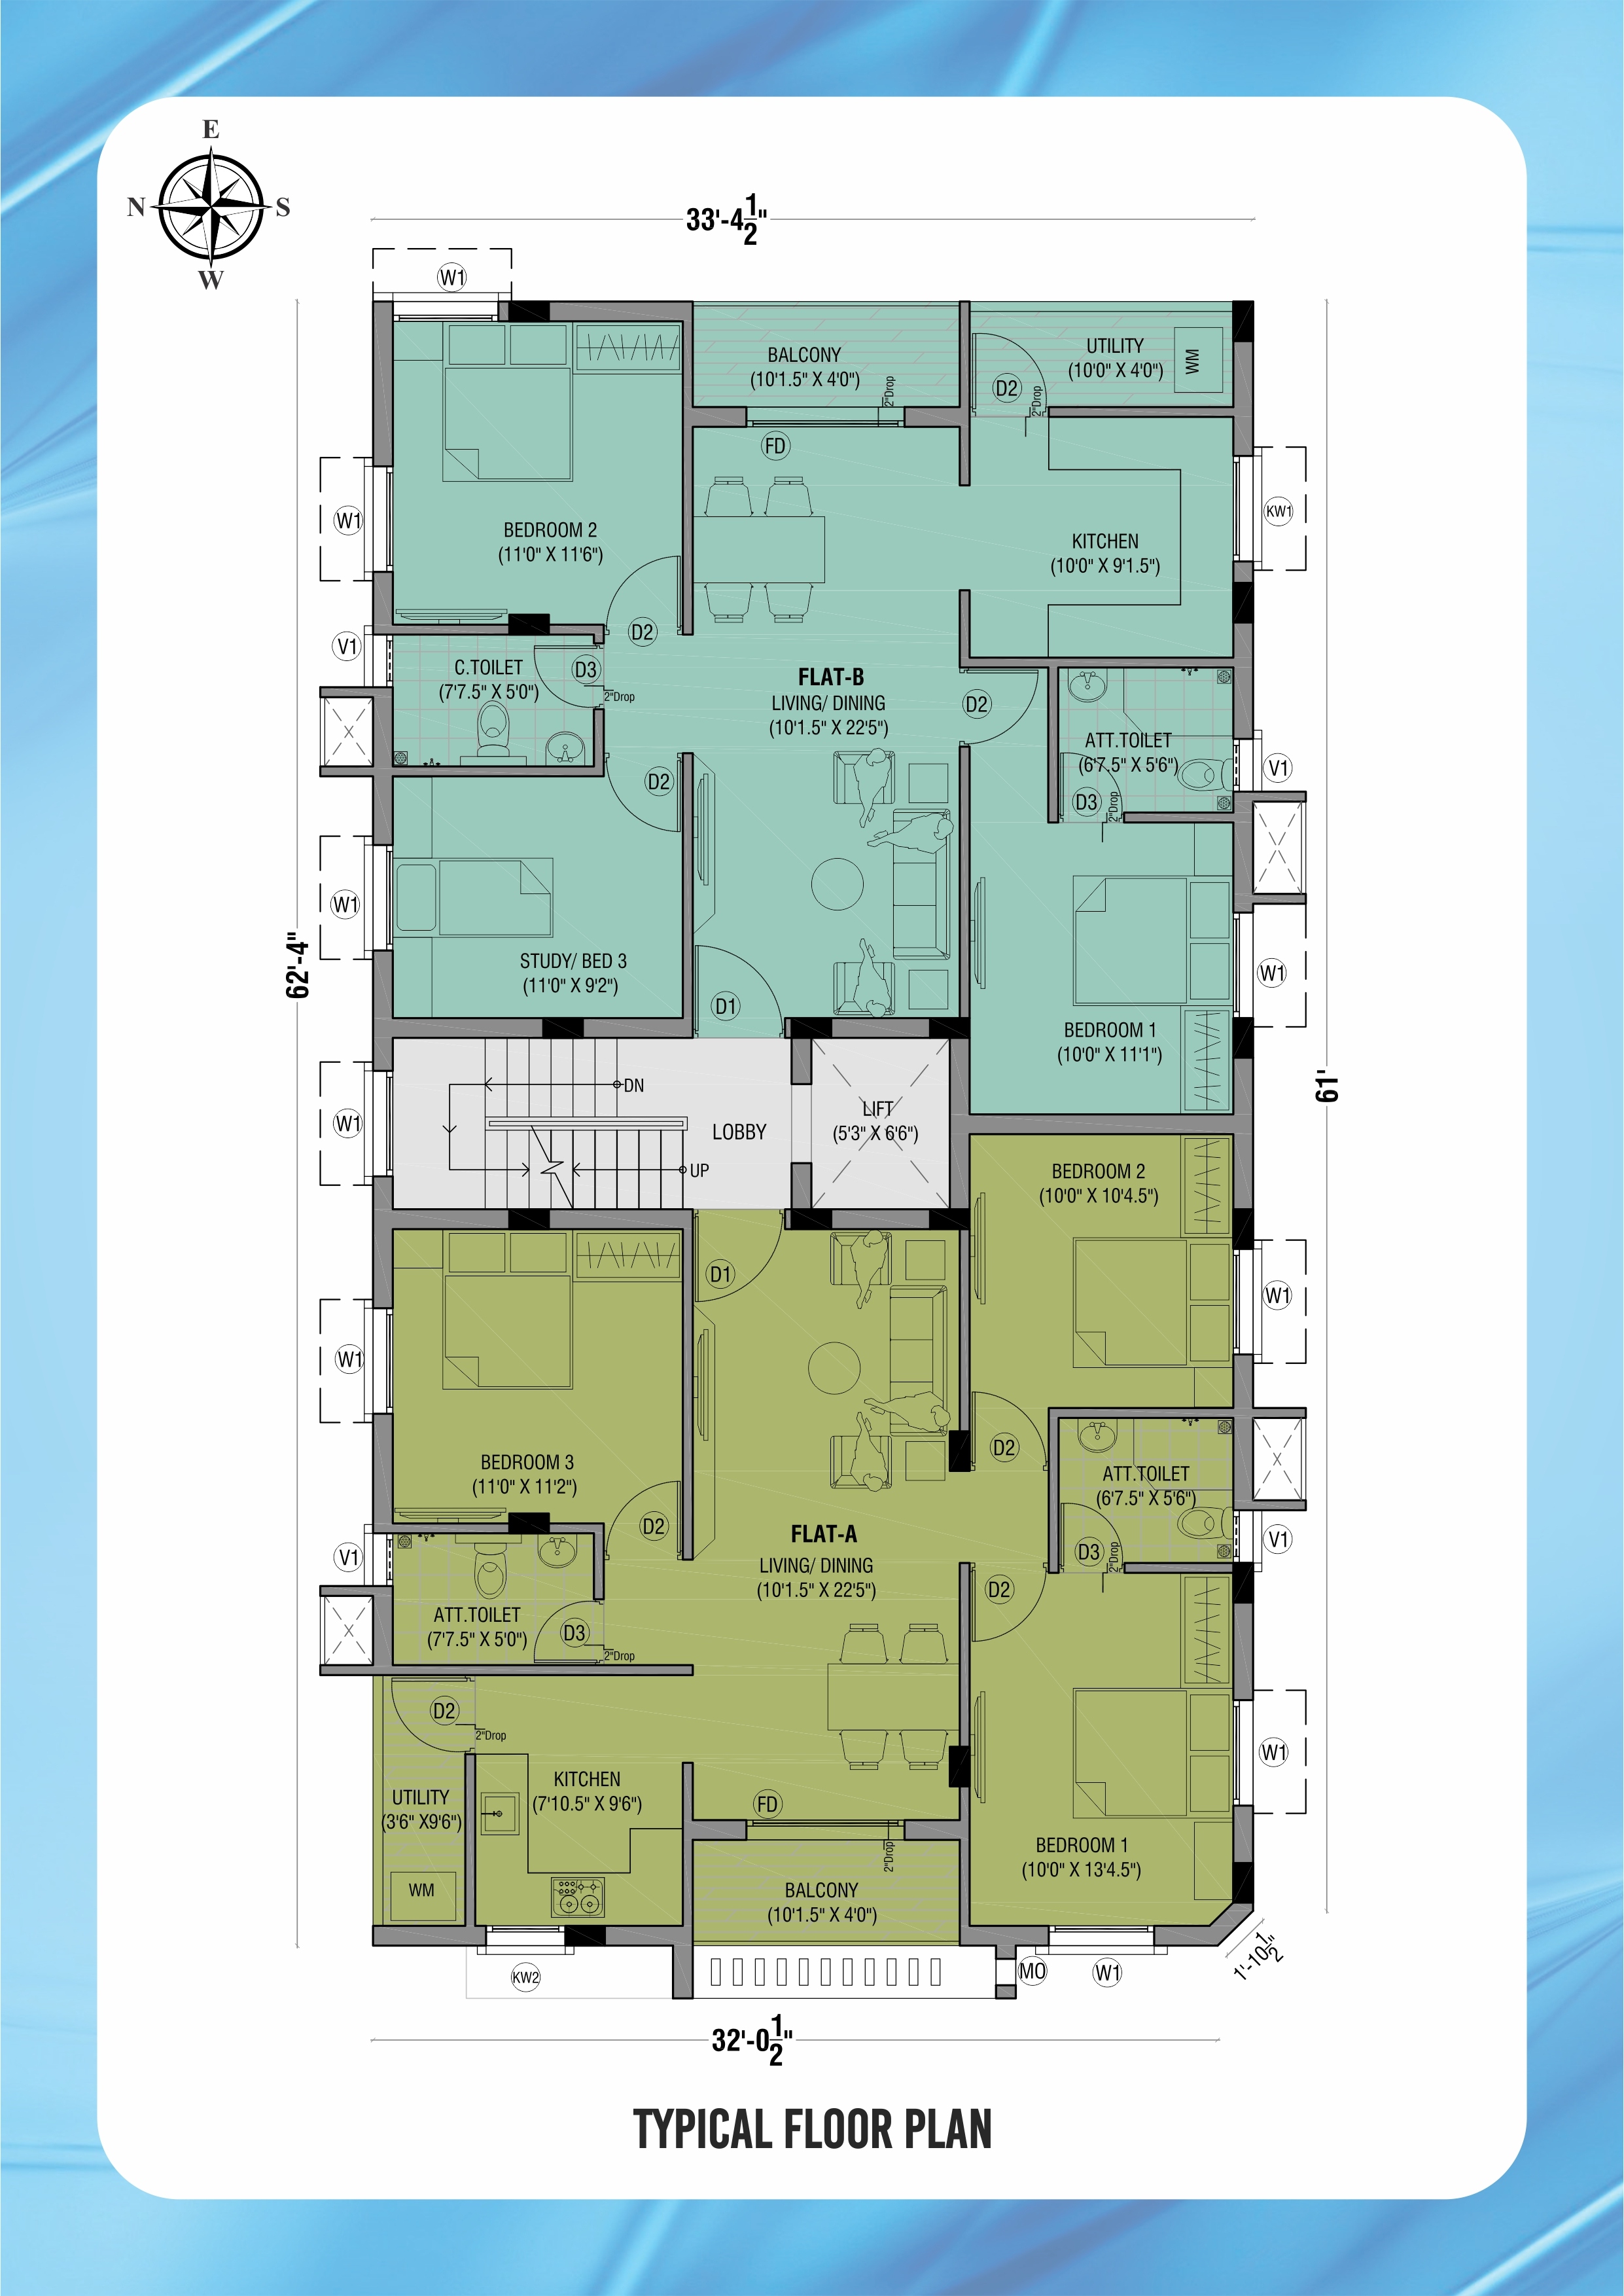 https://firmfoundations.in/projects/floorplans/thumbnails/16062000494Typ.jpg